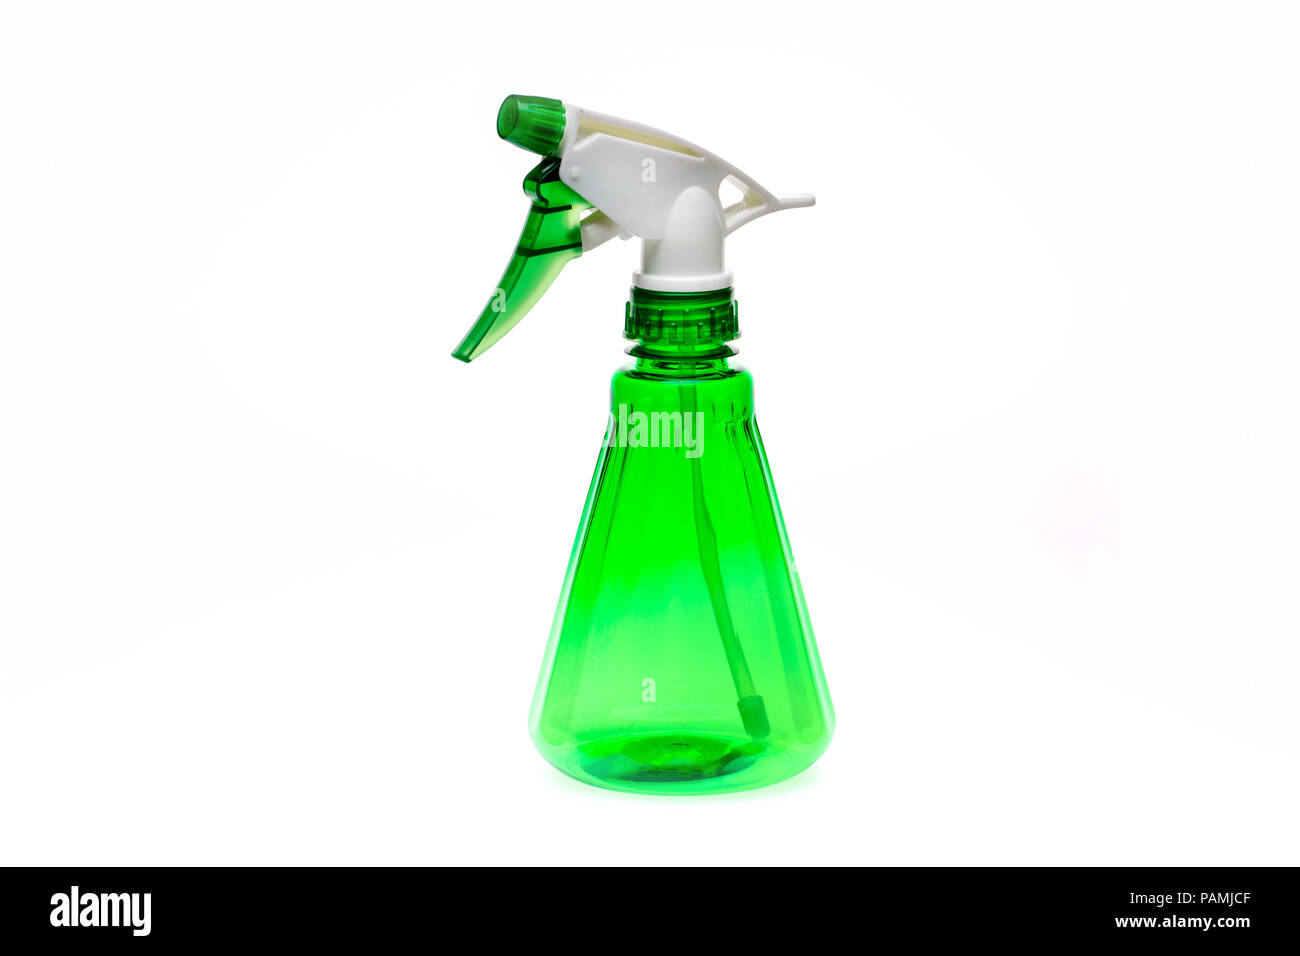 Plastic water spray bottle on a white background - Stock Image